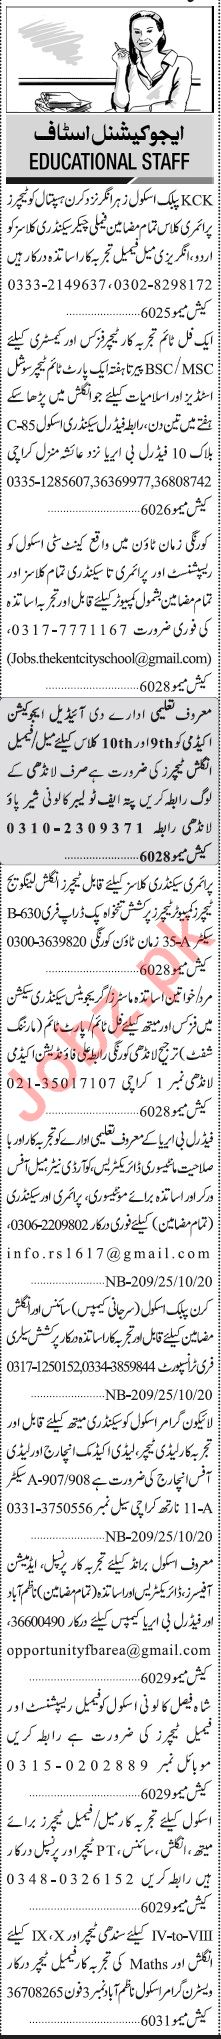 Jang Sunday Classified Ads 25 Oct 2020 for Educational Staff